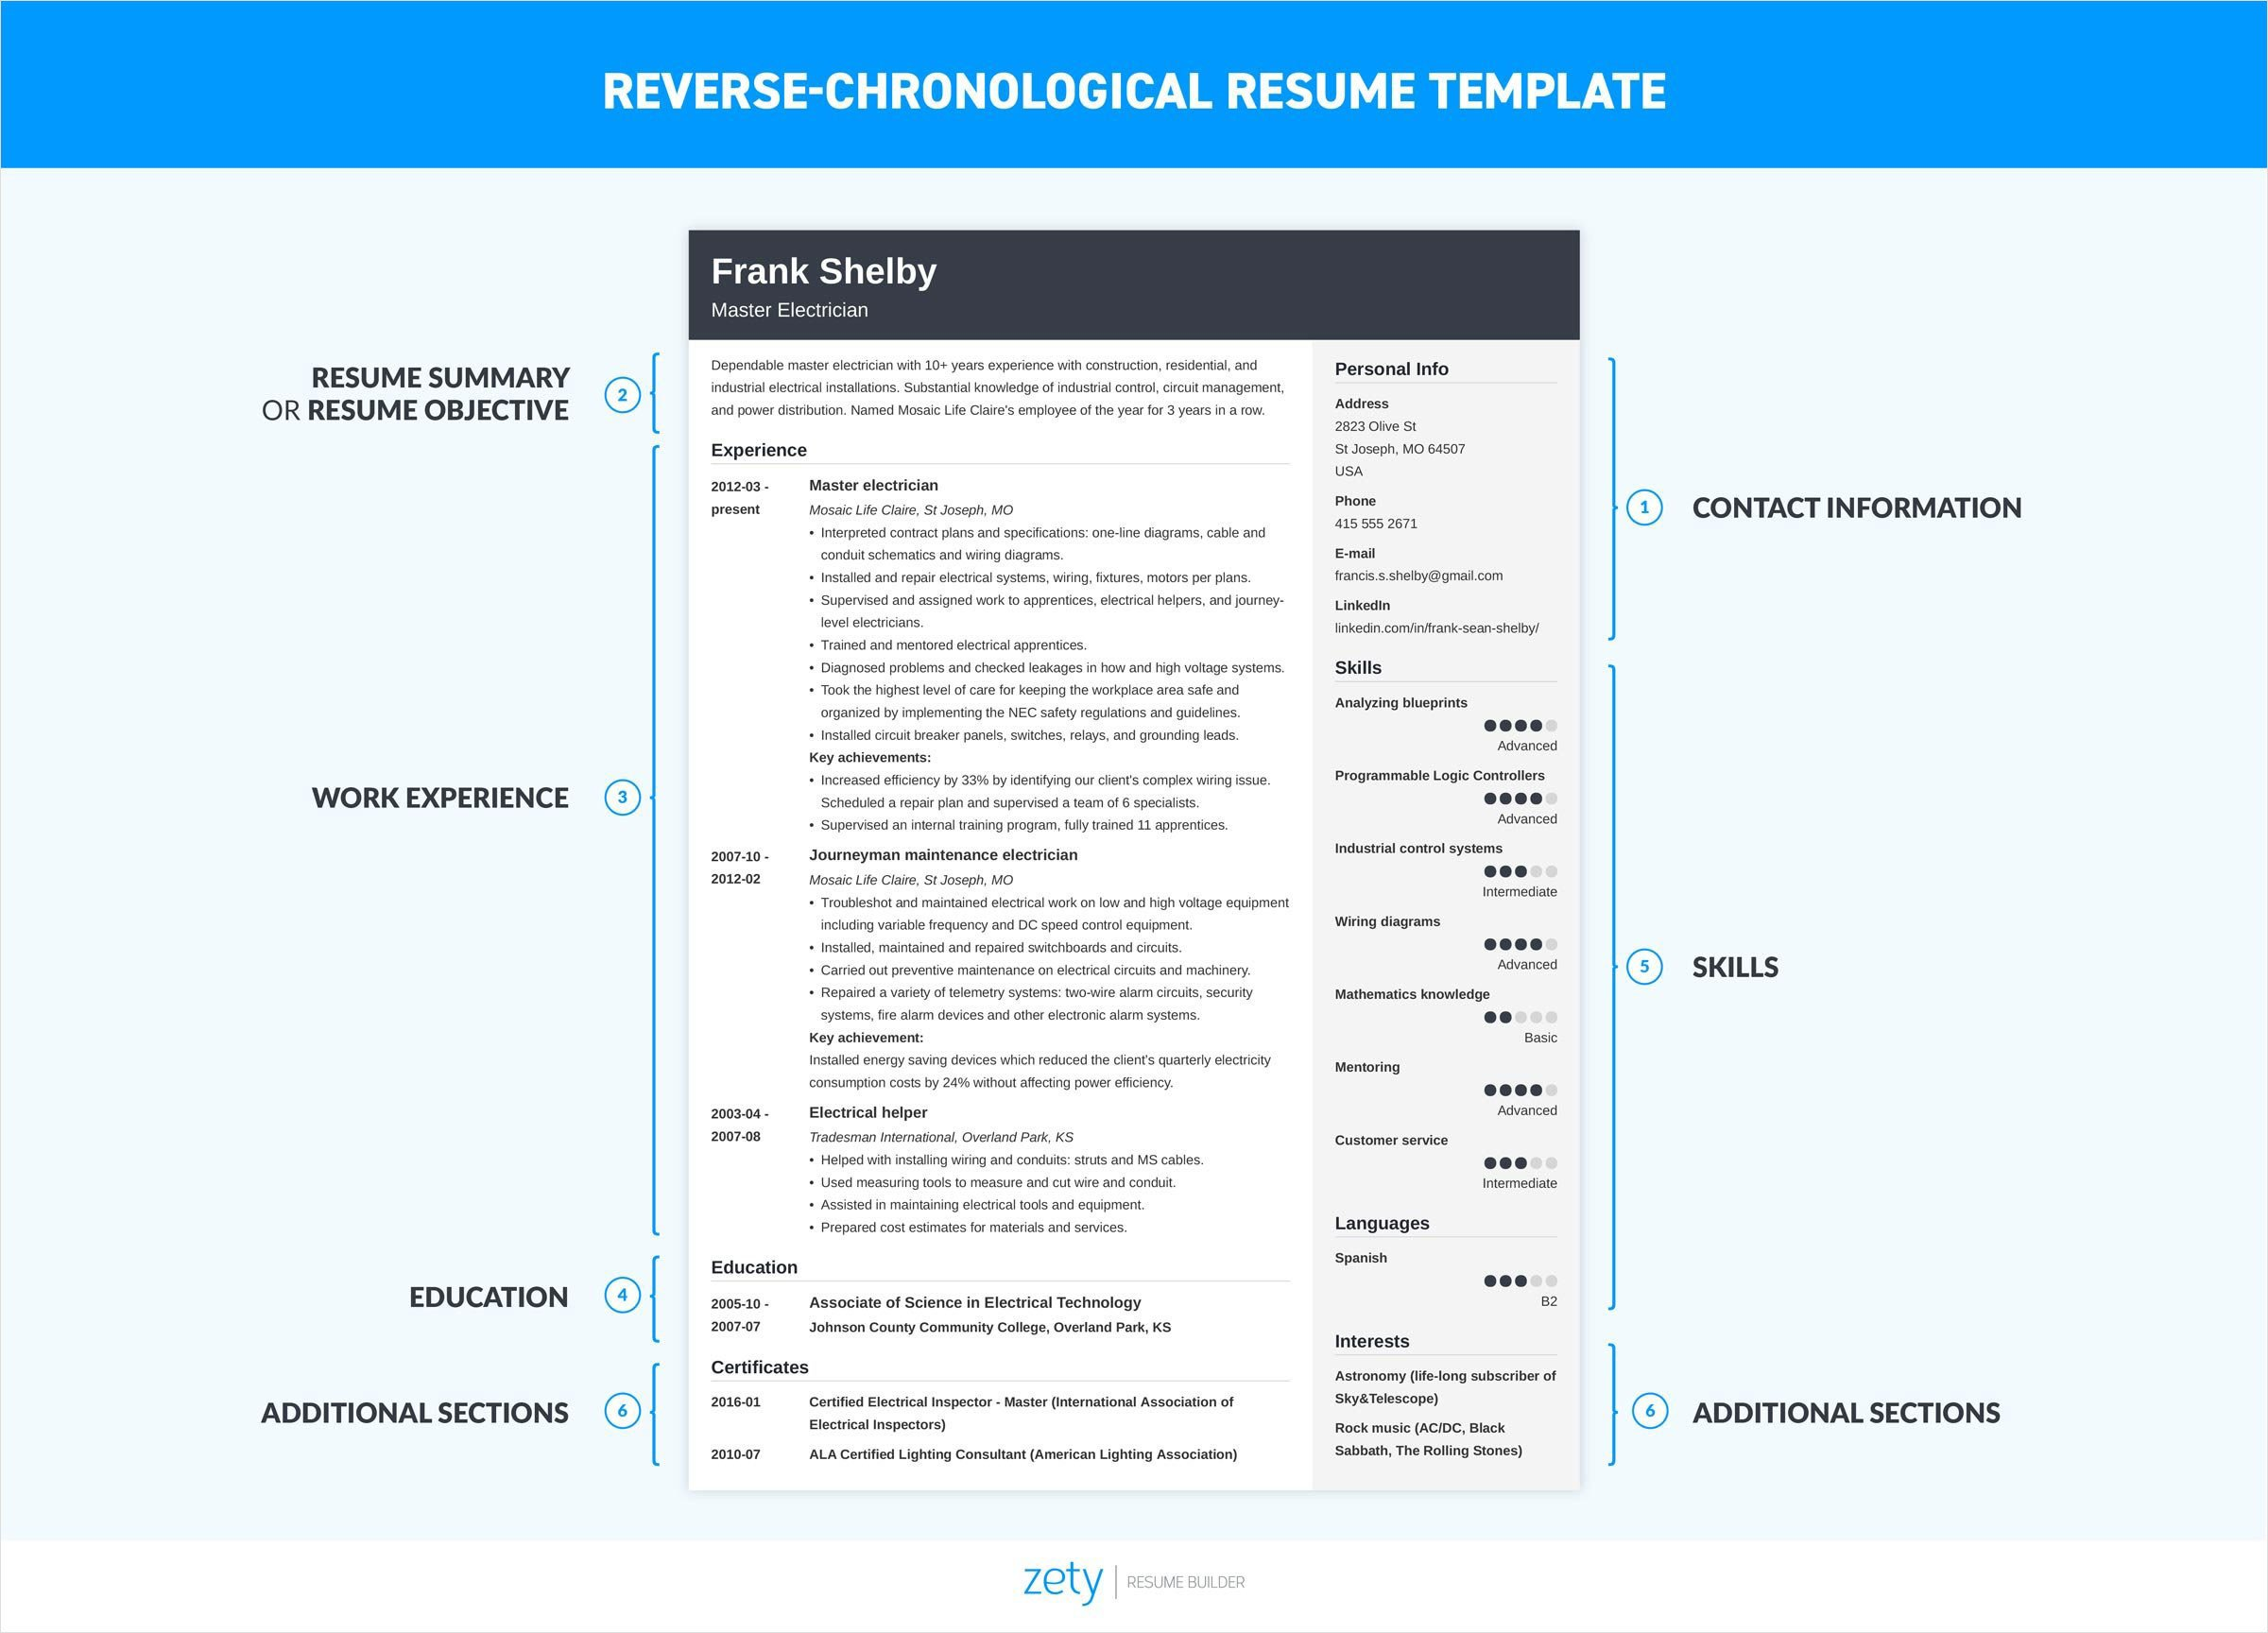 how to make a resume using the reverse chronological resume format - How To Type Up A Resume